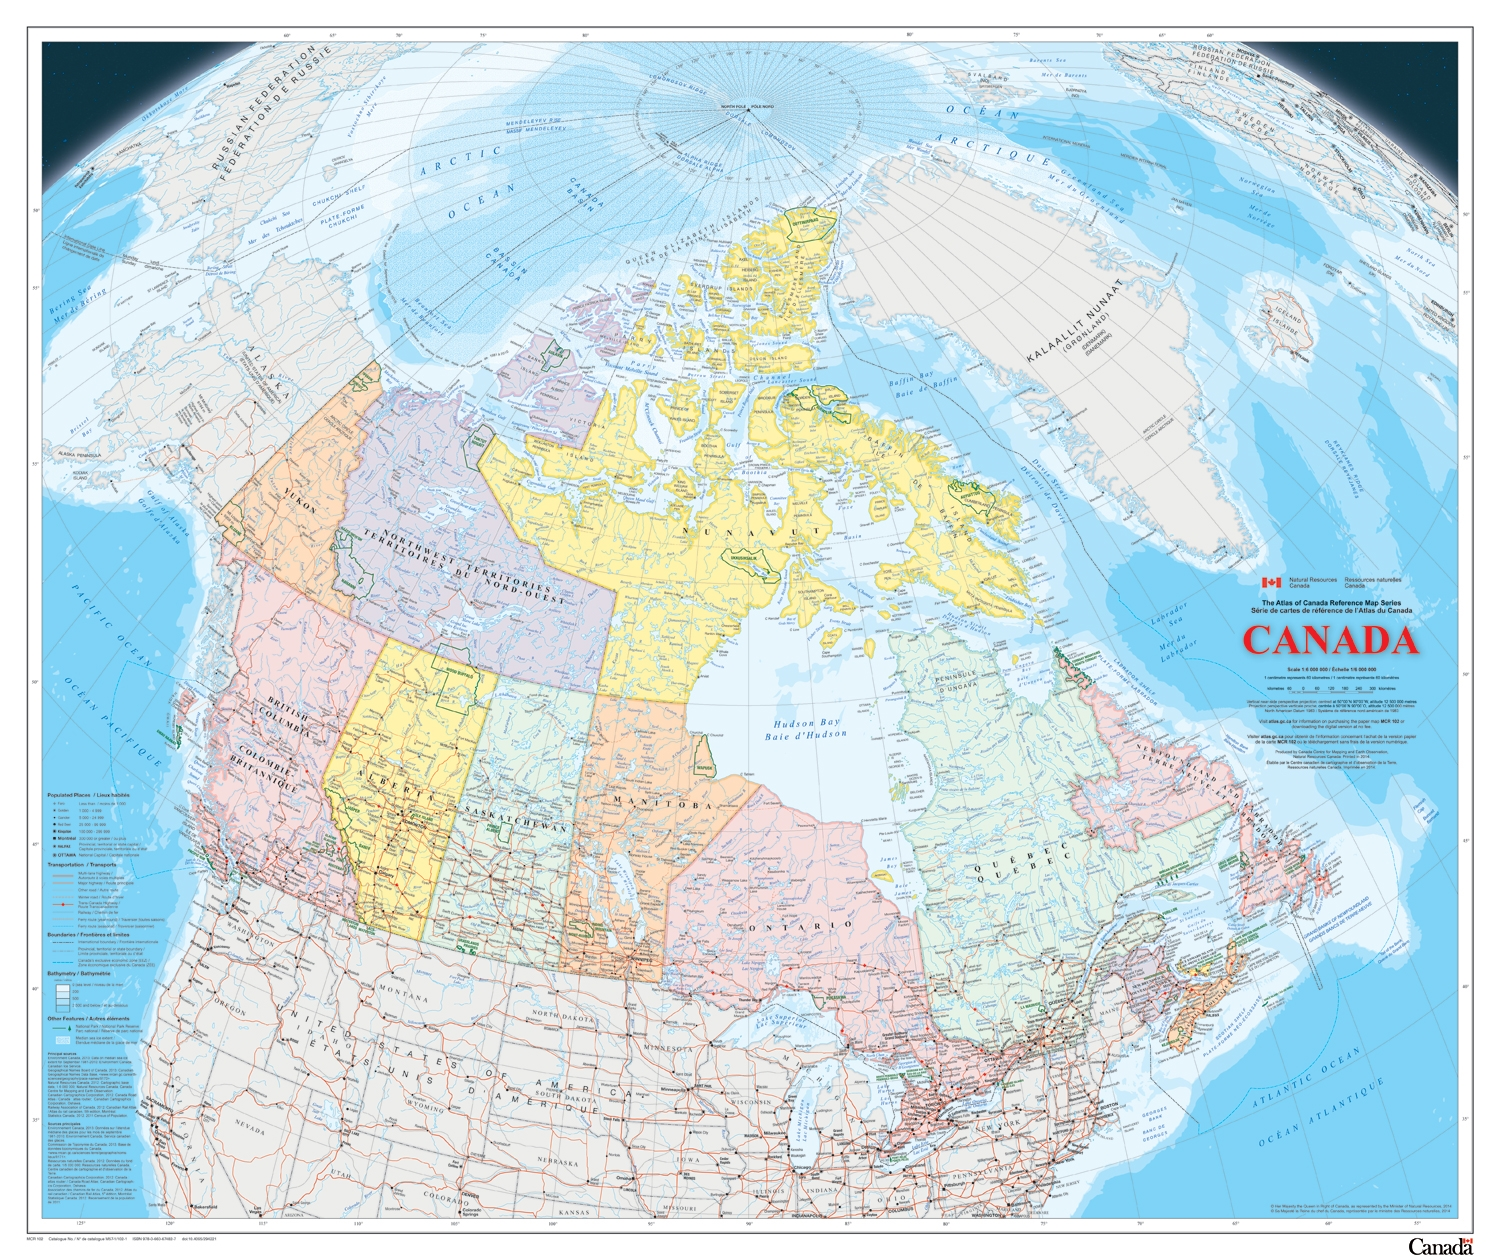 Canada Political Natural Resources Canada Wall Map This Map Is The Latest Publication In The Atlas